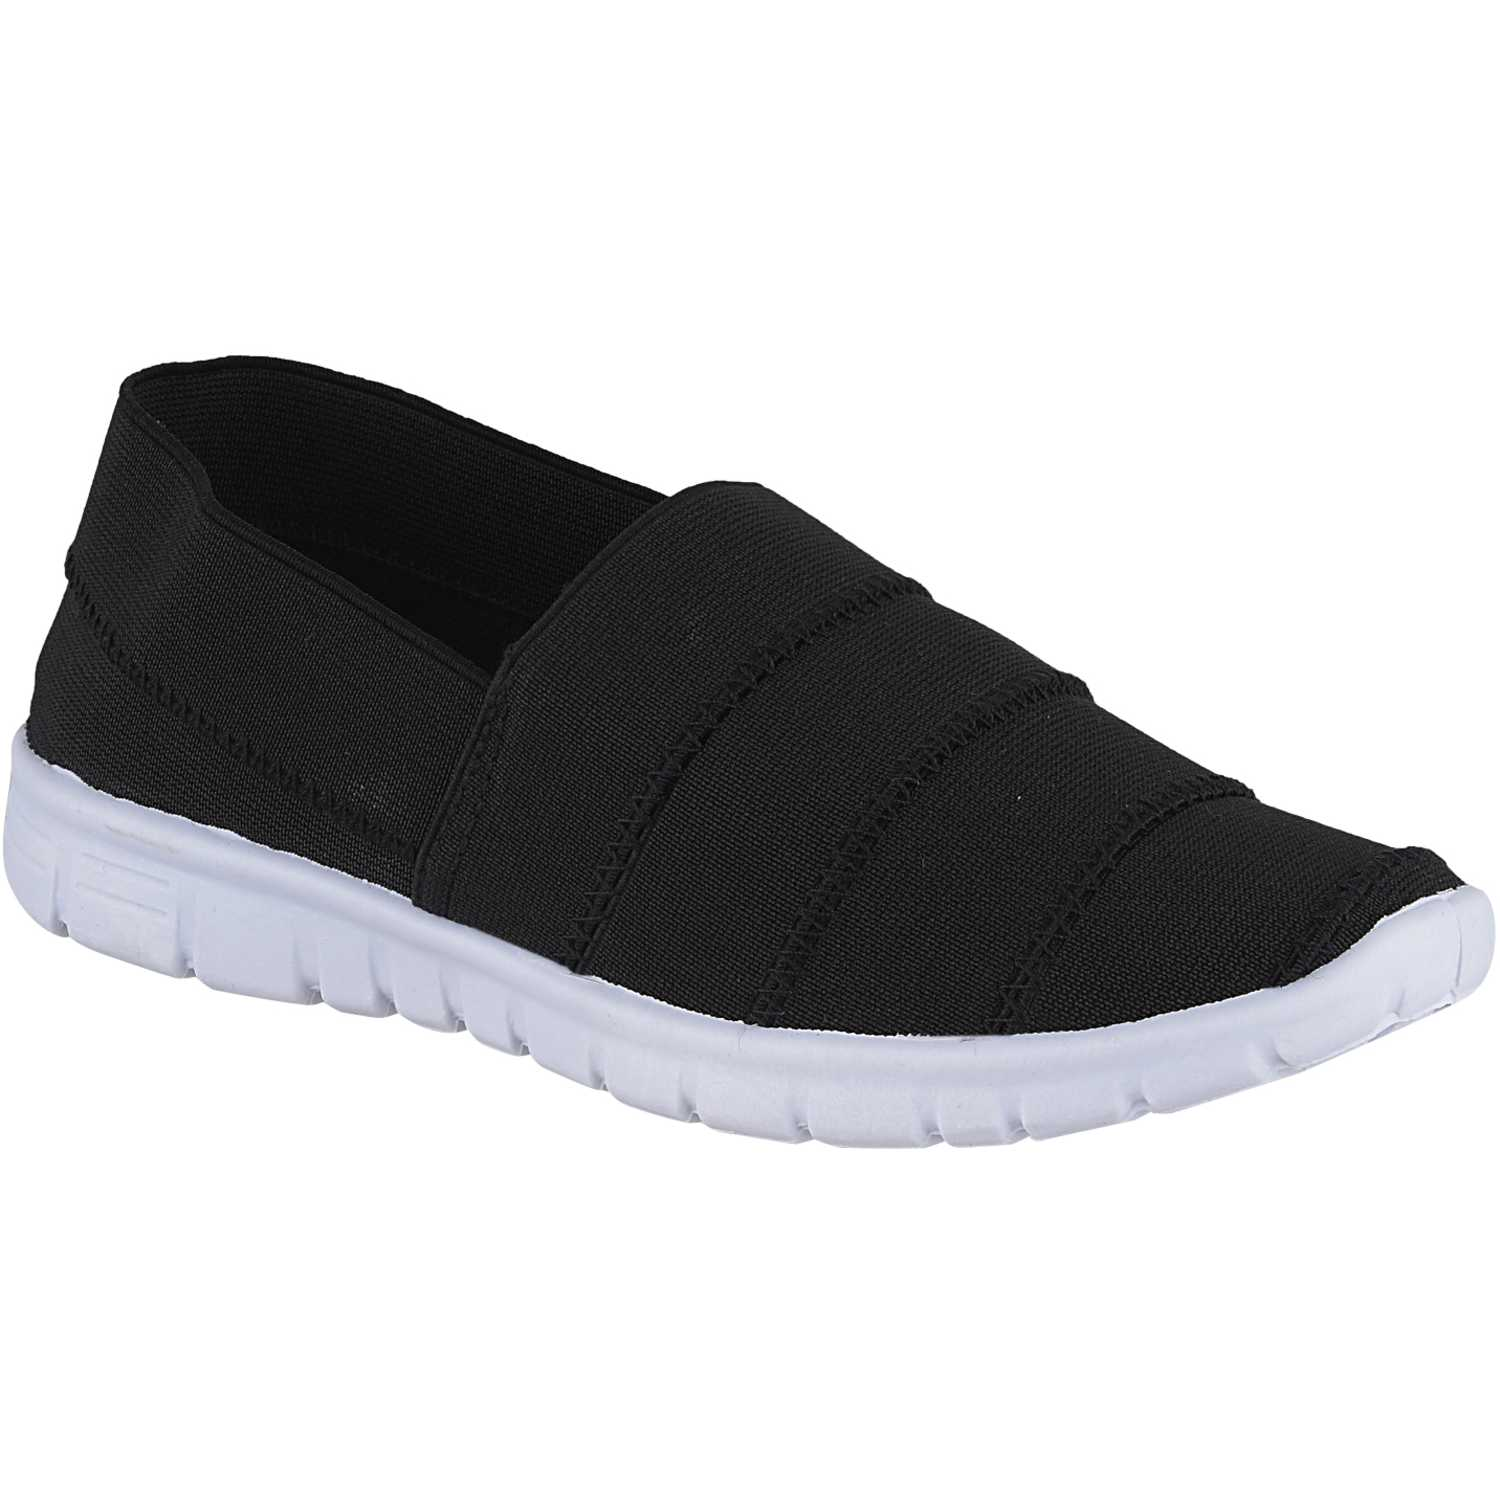 Just4u hefei-zc-10055 Negro Zapatillas Fashion